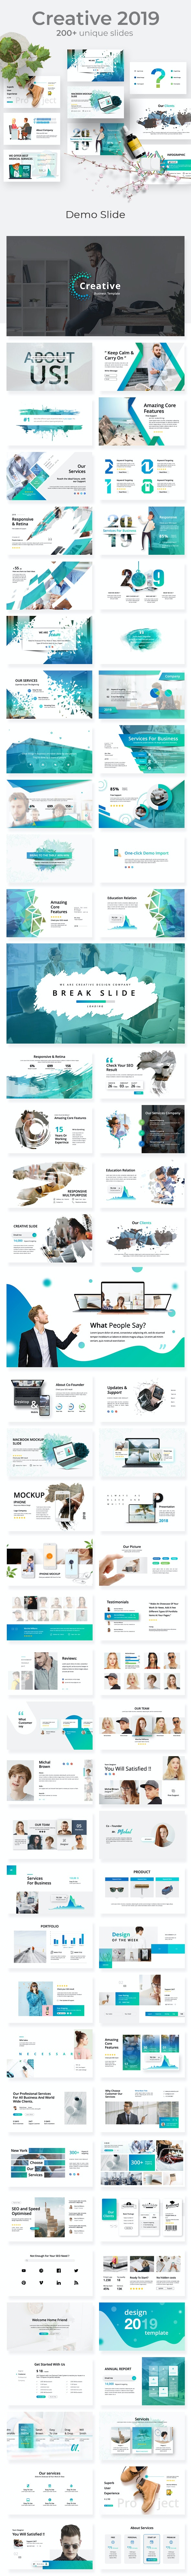 Creative Business 2019 Powerpoint Template - Business PowerPoint Templates